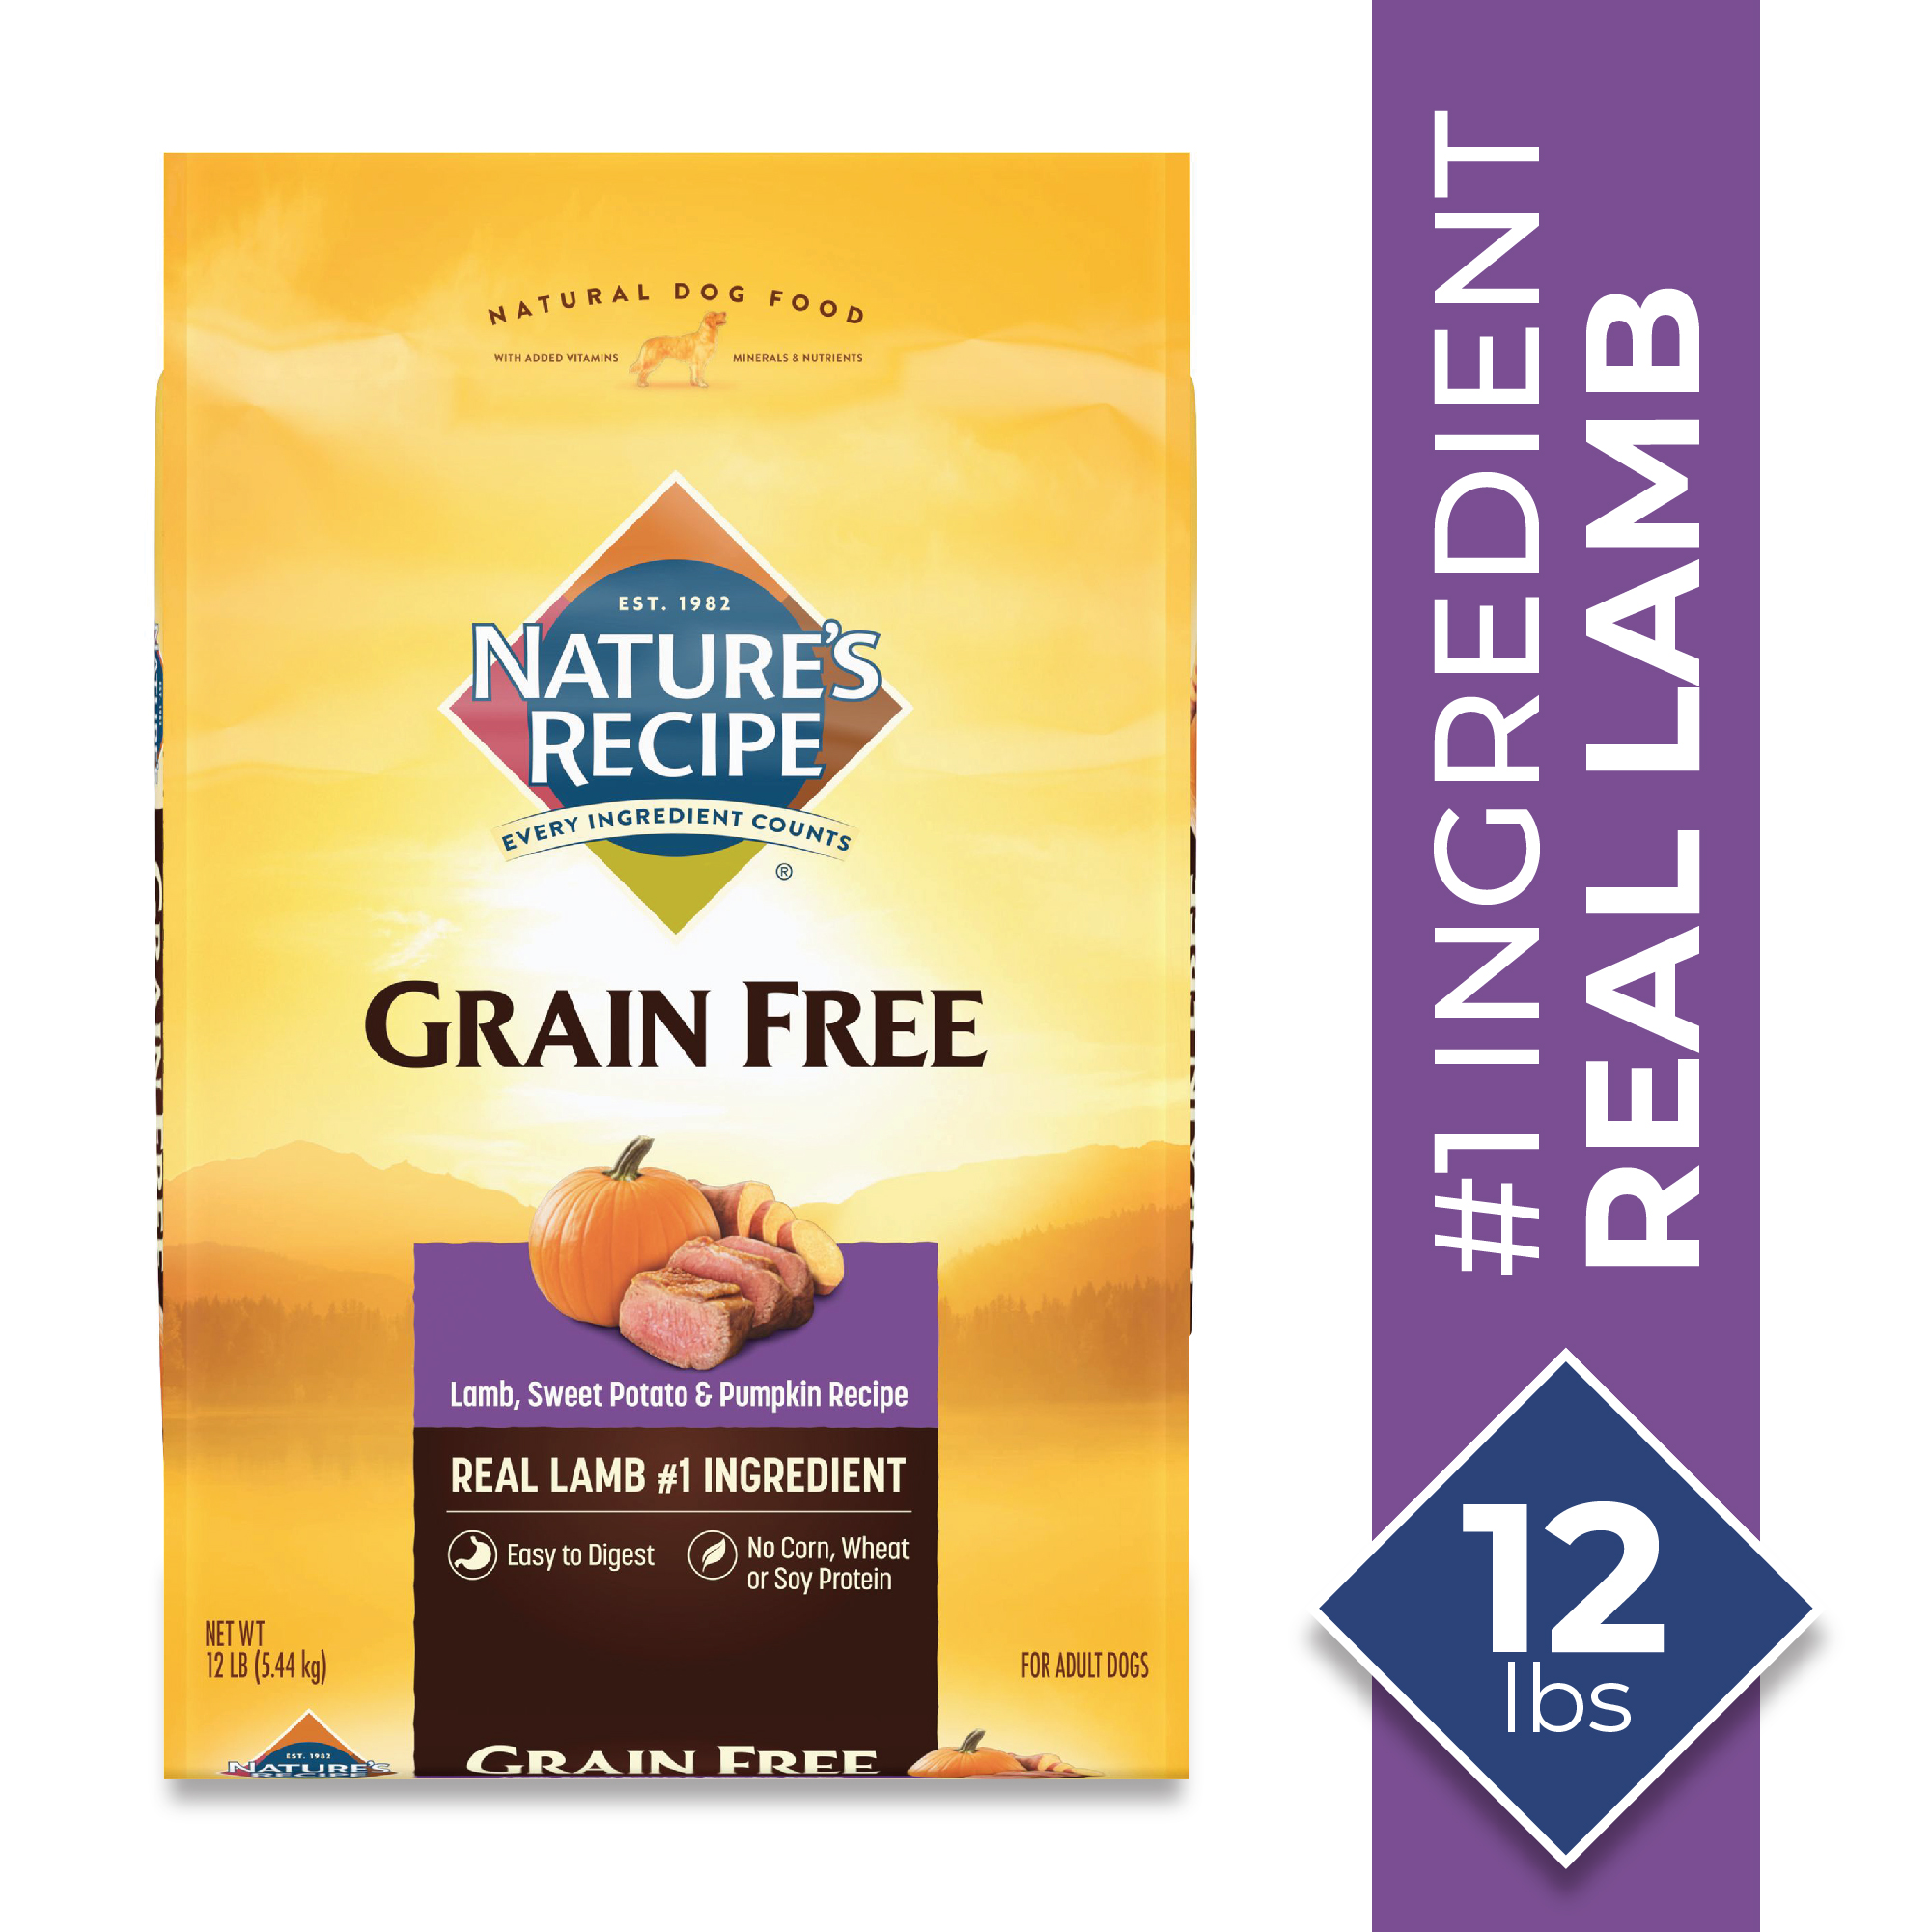 Nature's Recipe Grain Free Easy To Digest Lamb, Sweet